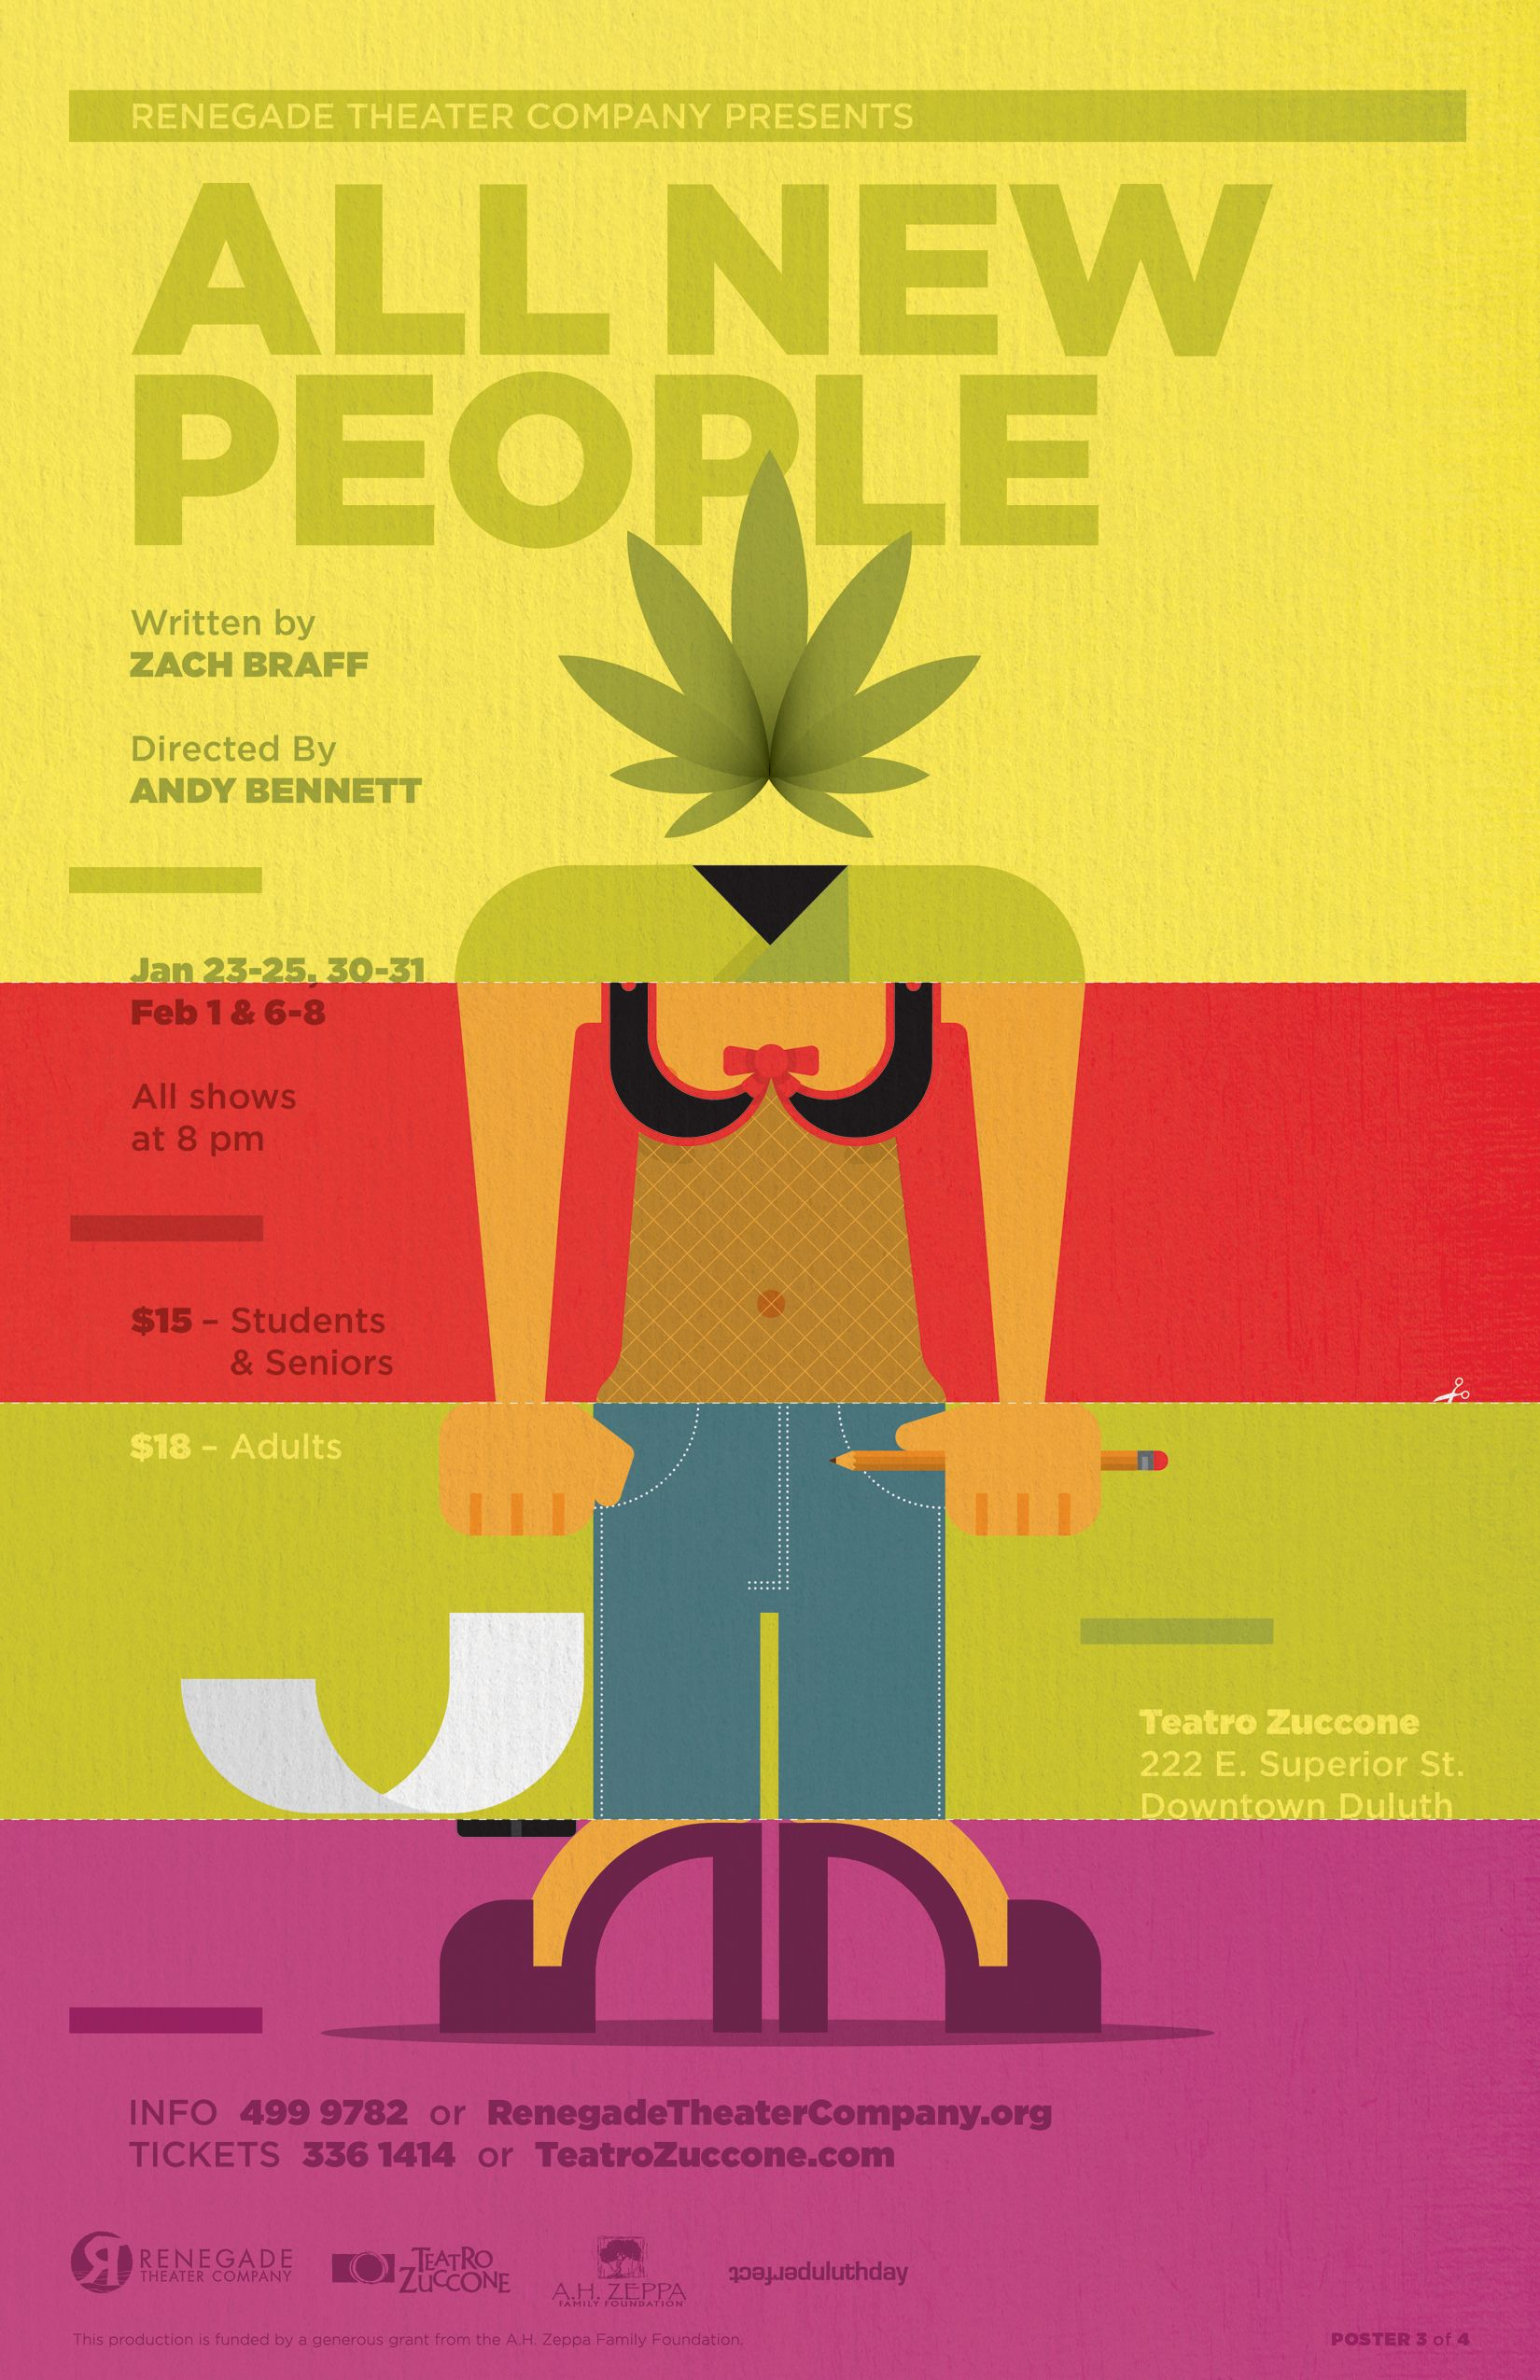 All New People By Zach Braff Theater Poster Design For Renegade